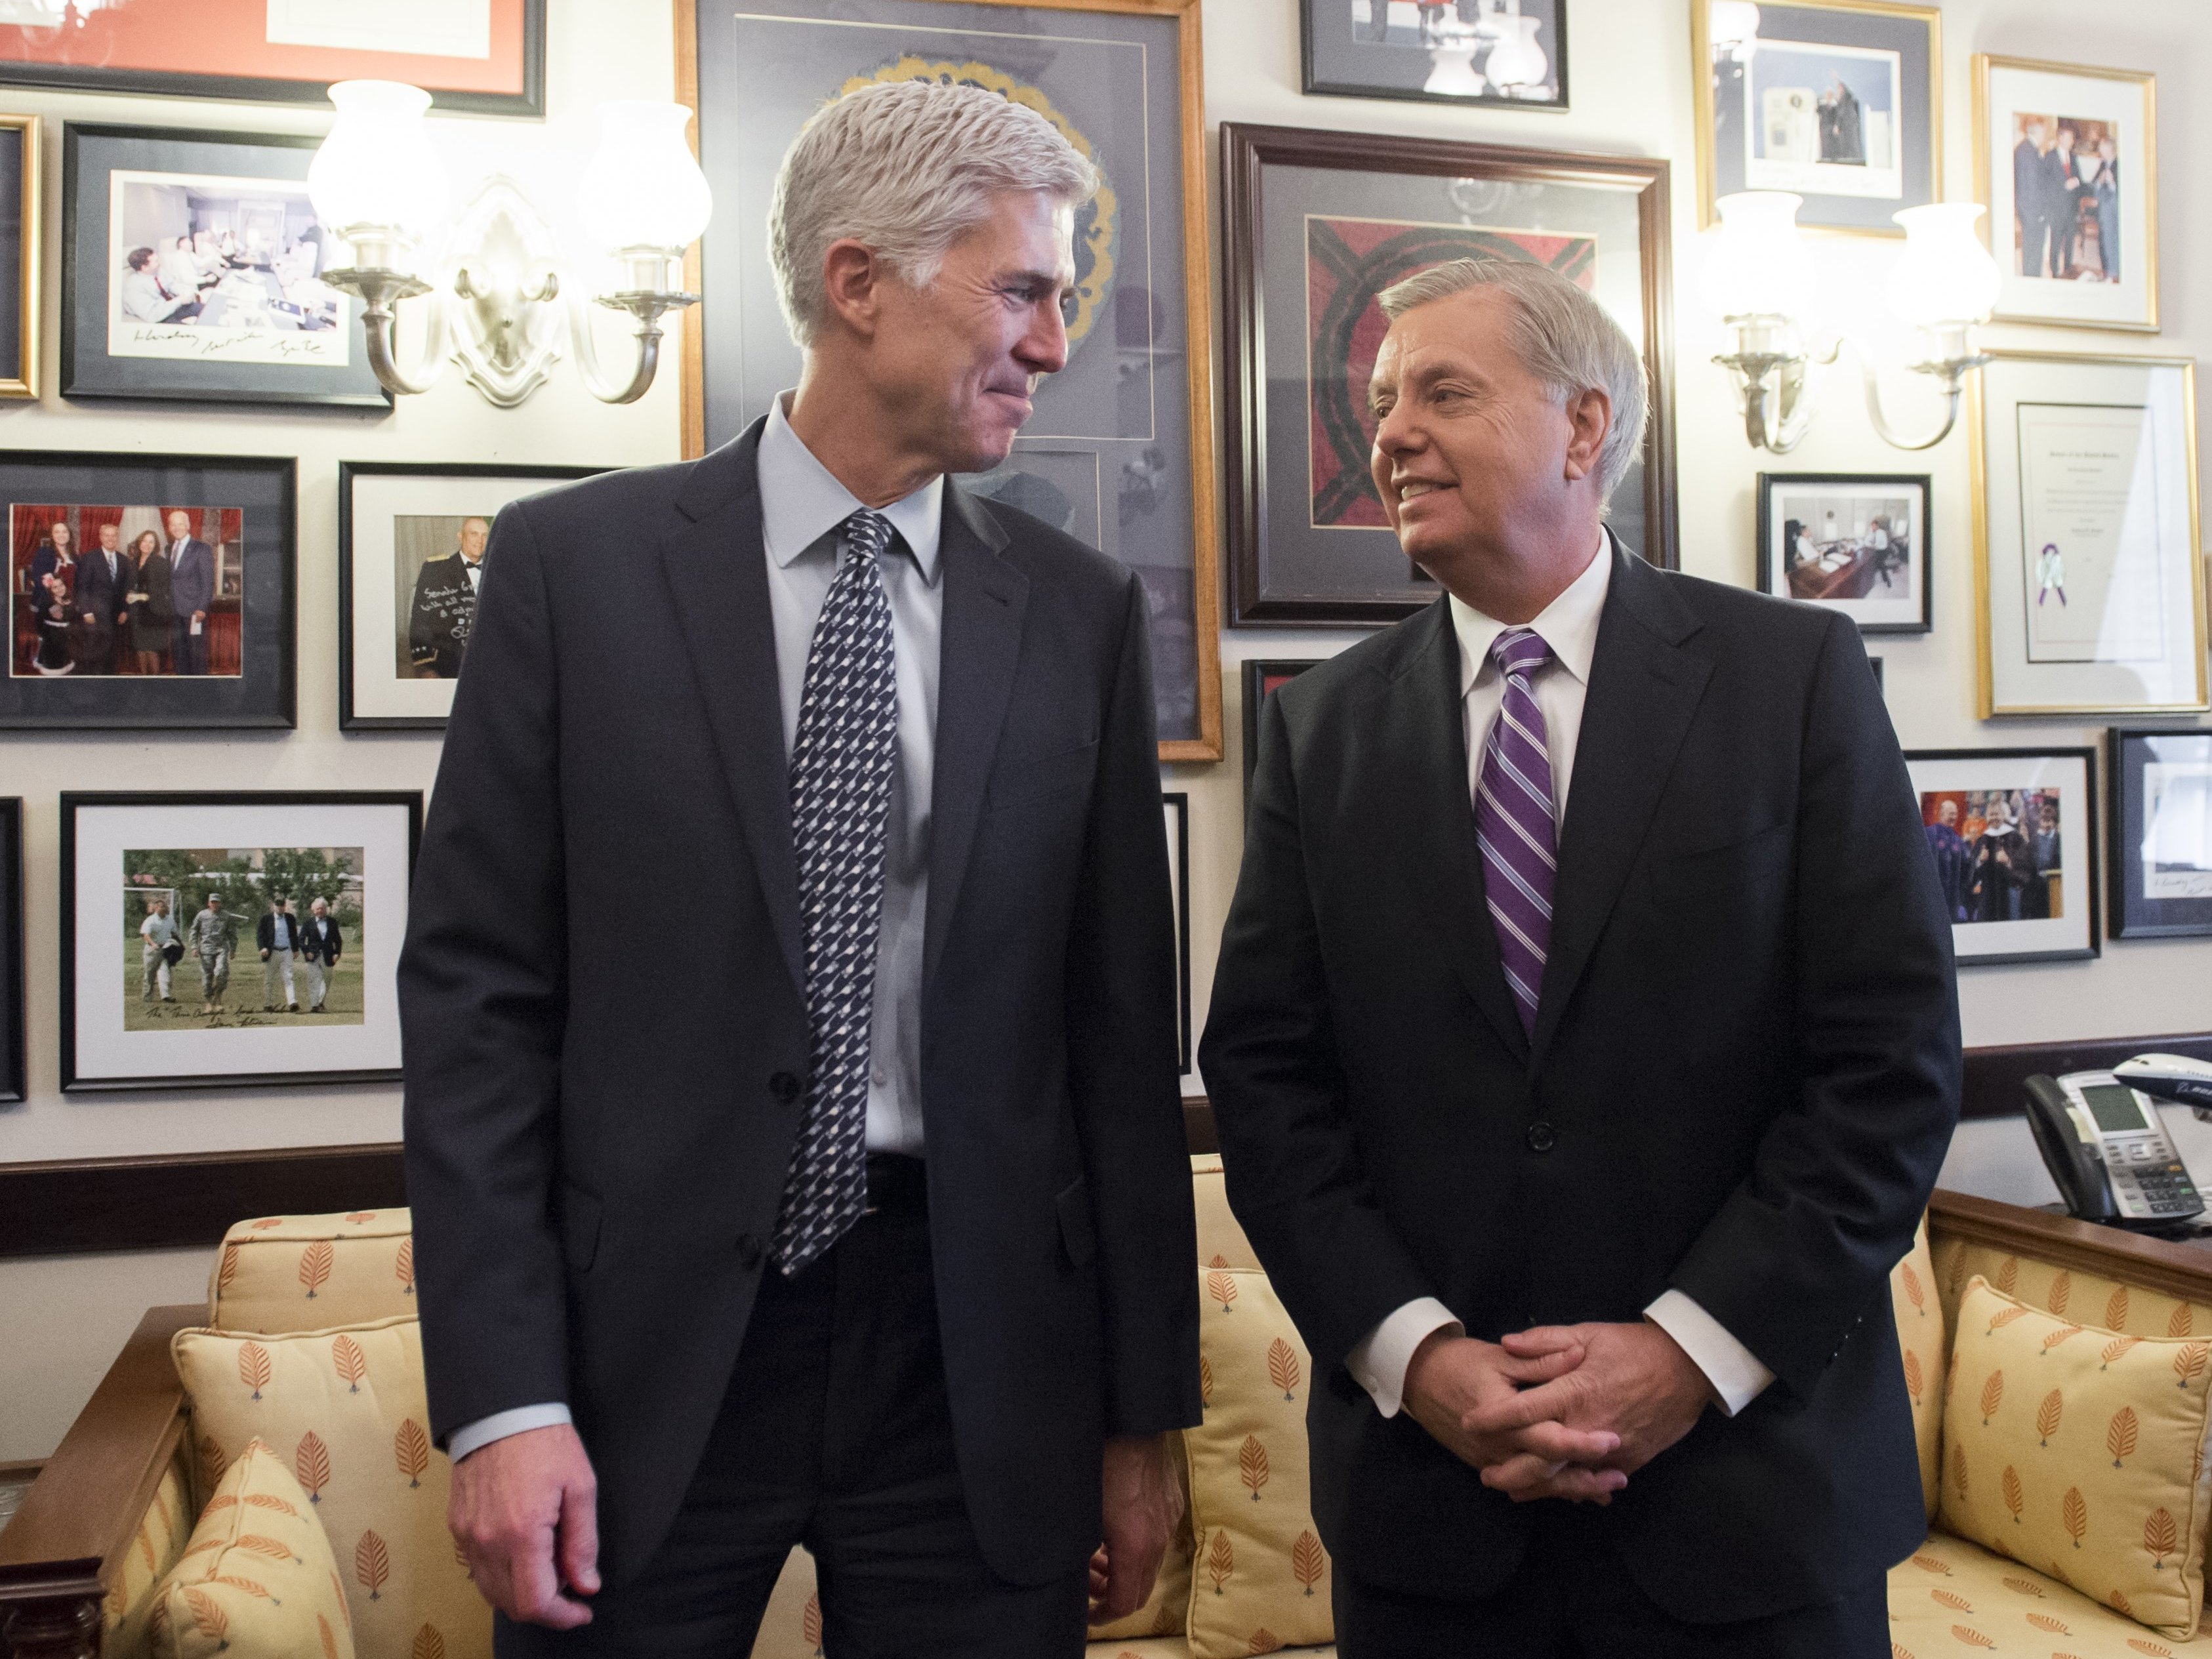 Sen. Graham says Democrats can't show Gorsuch is unqualified for Supreme Court